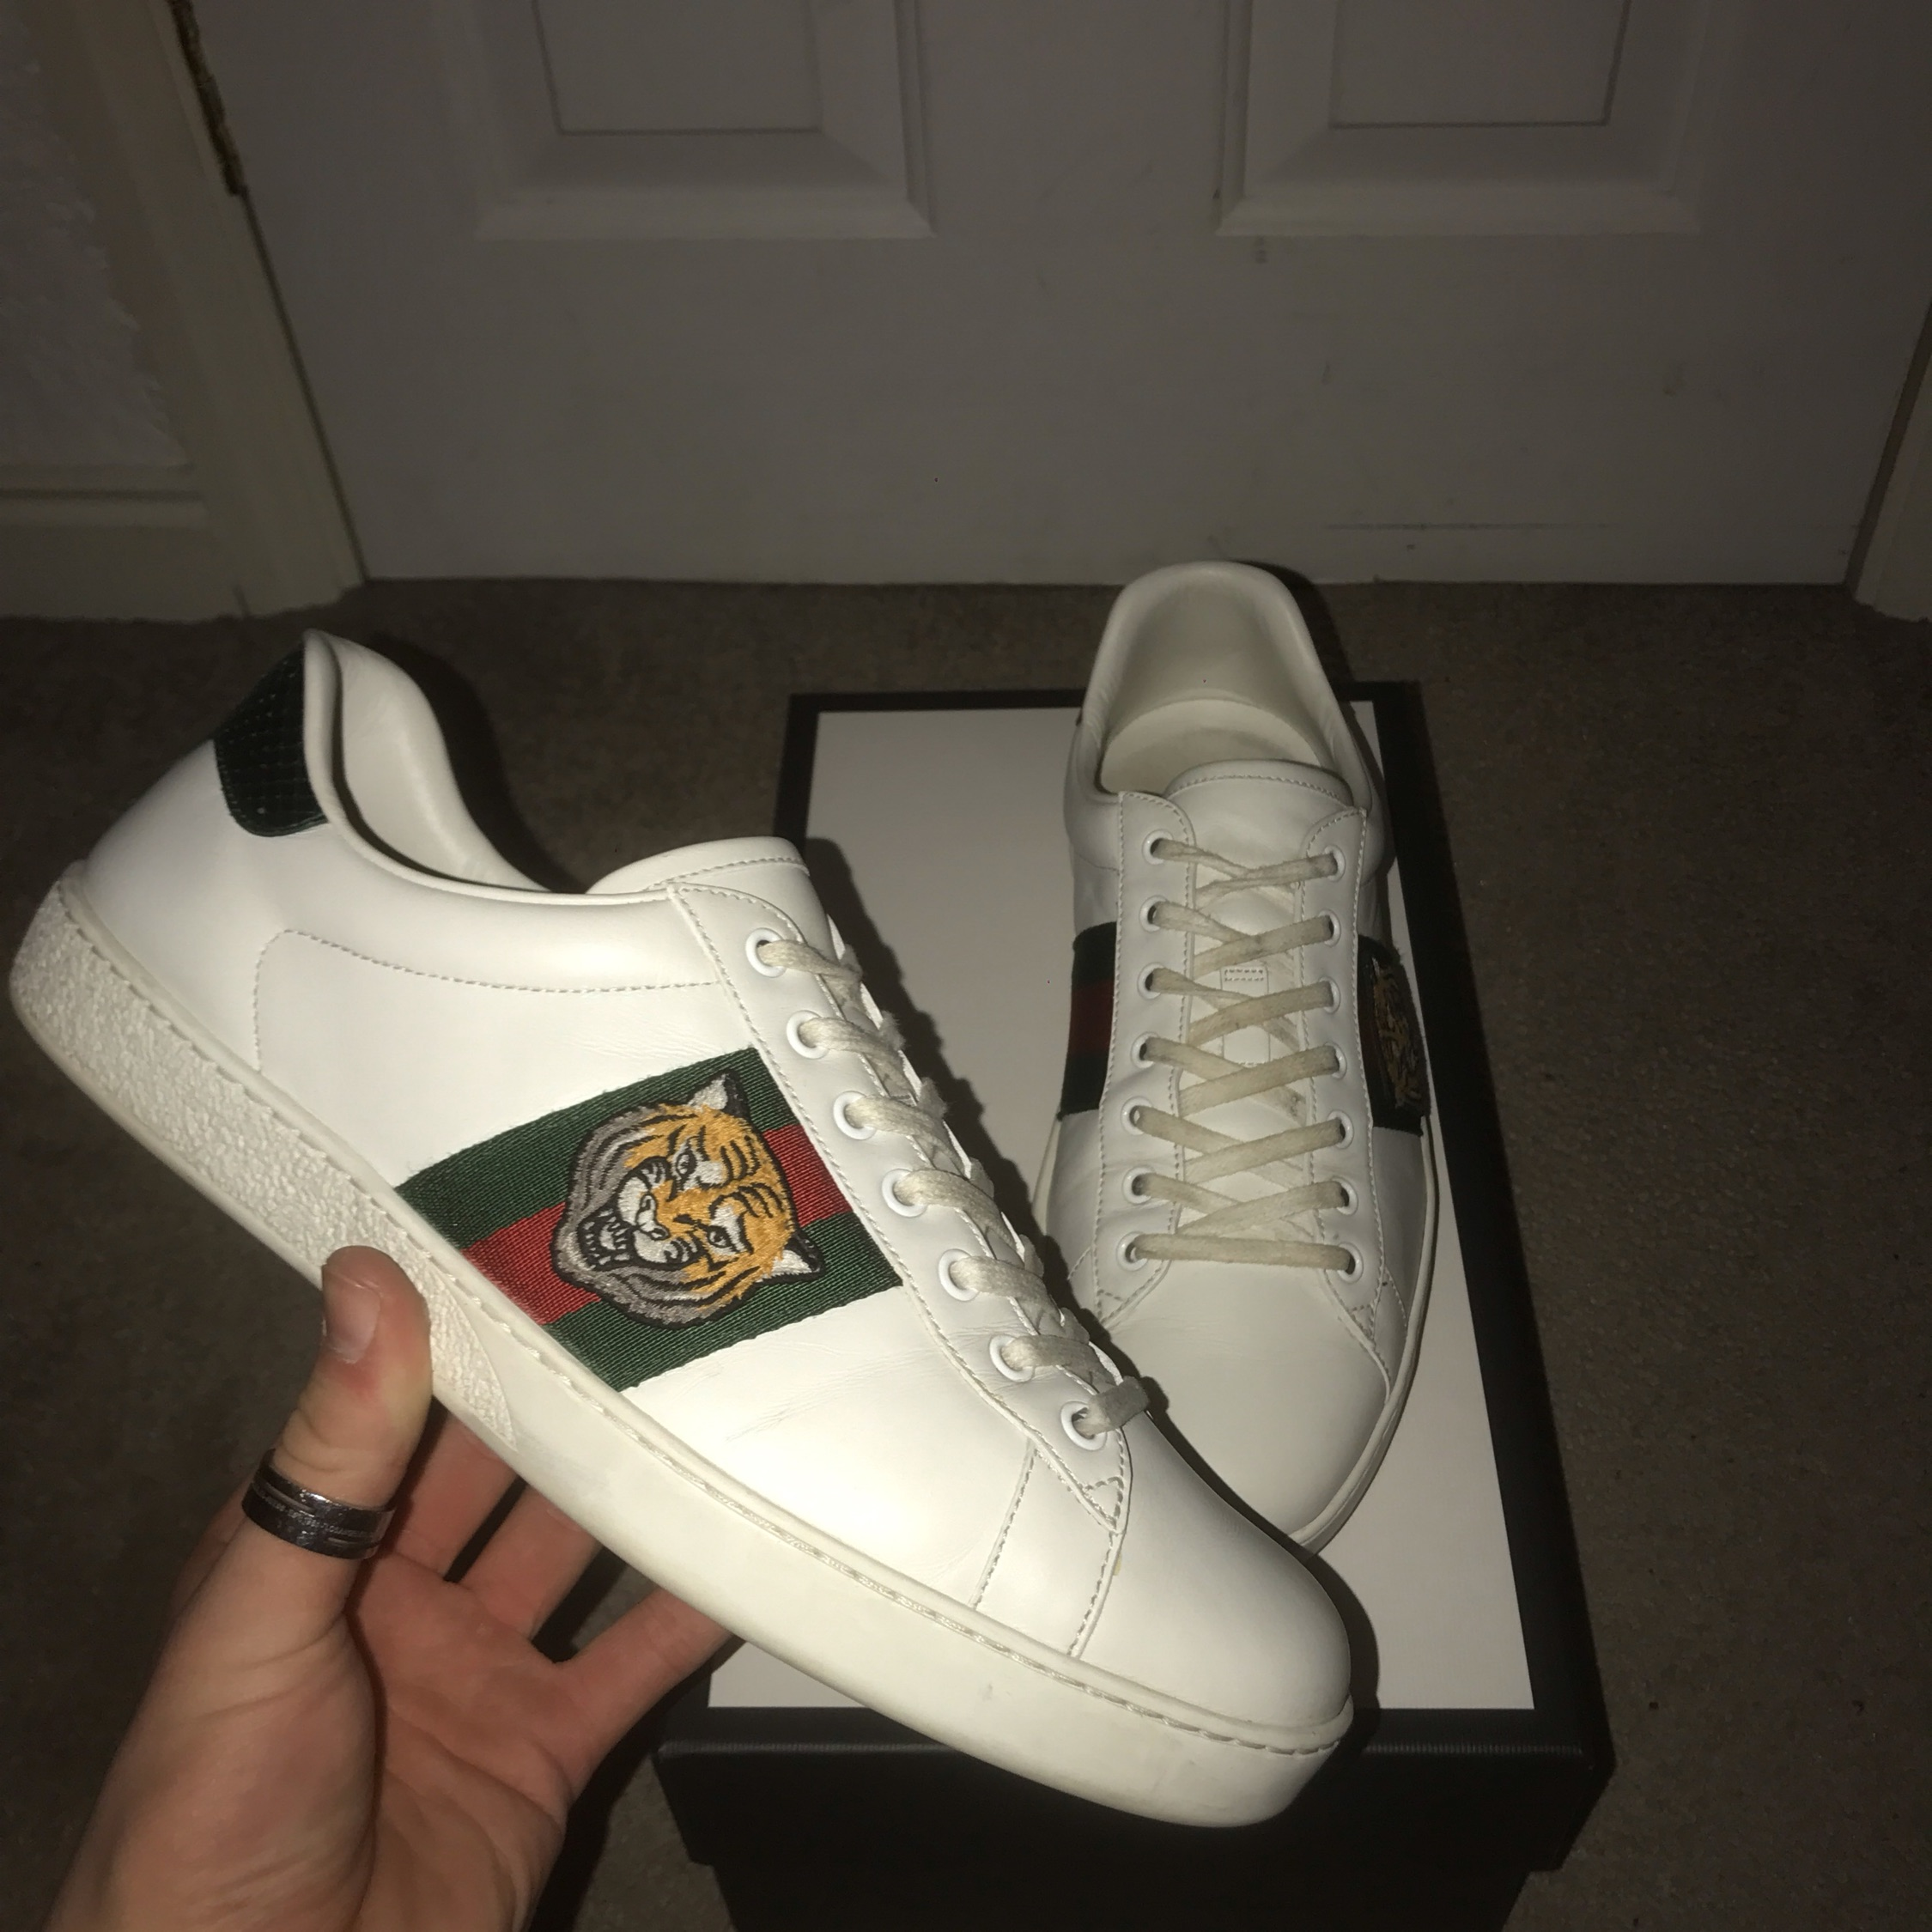 Gucci Ace Sneakers Size Eu 43 Tigers